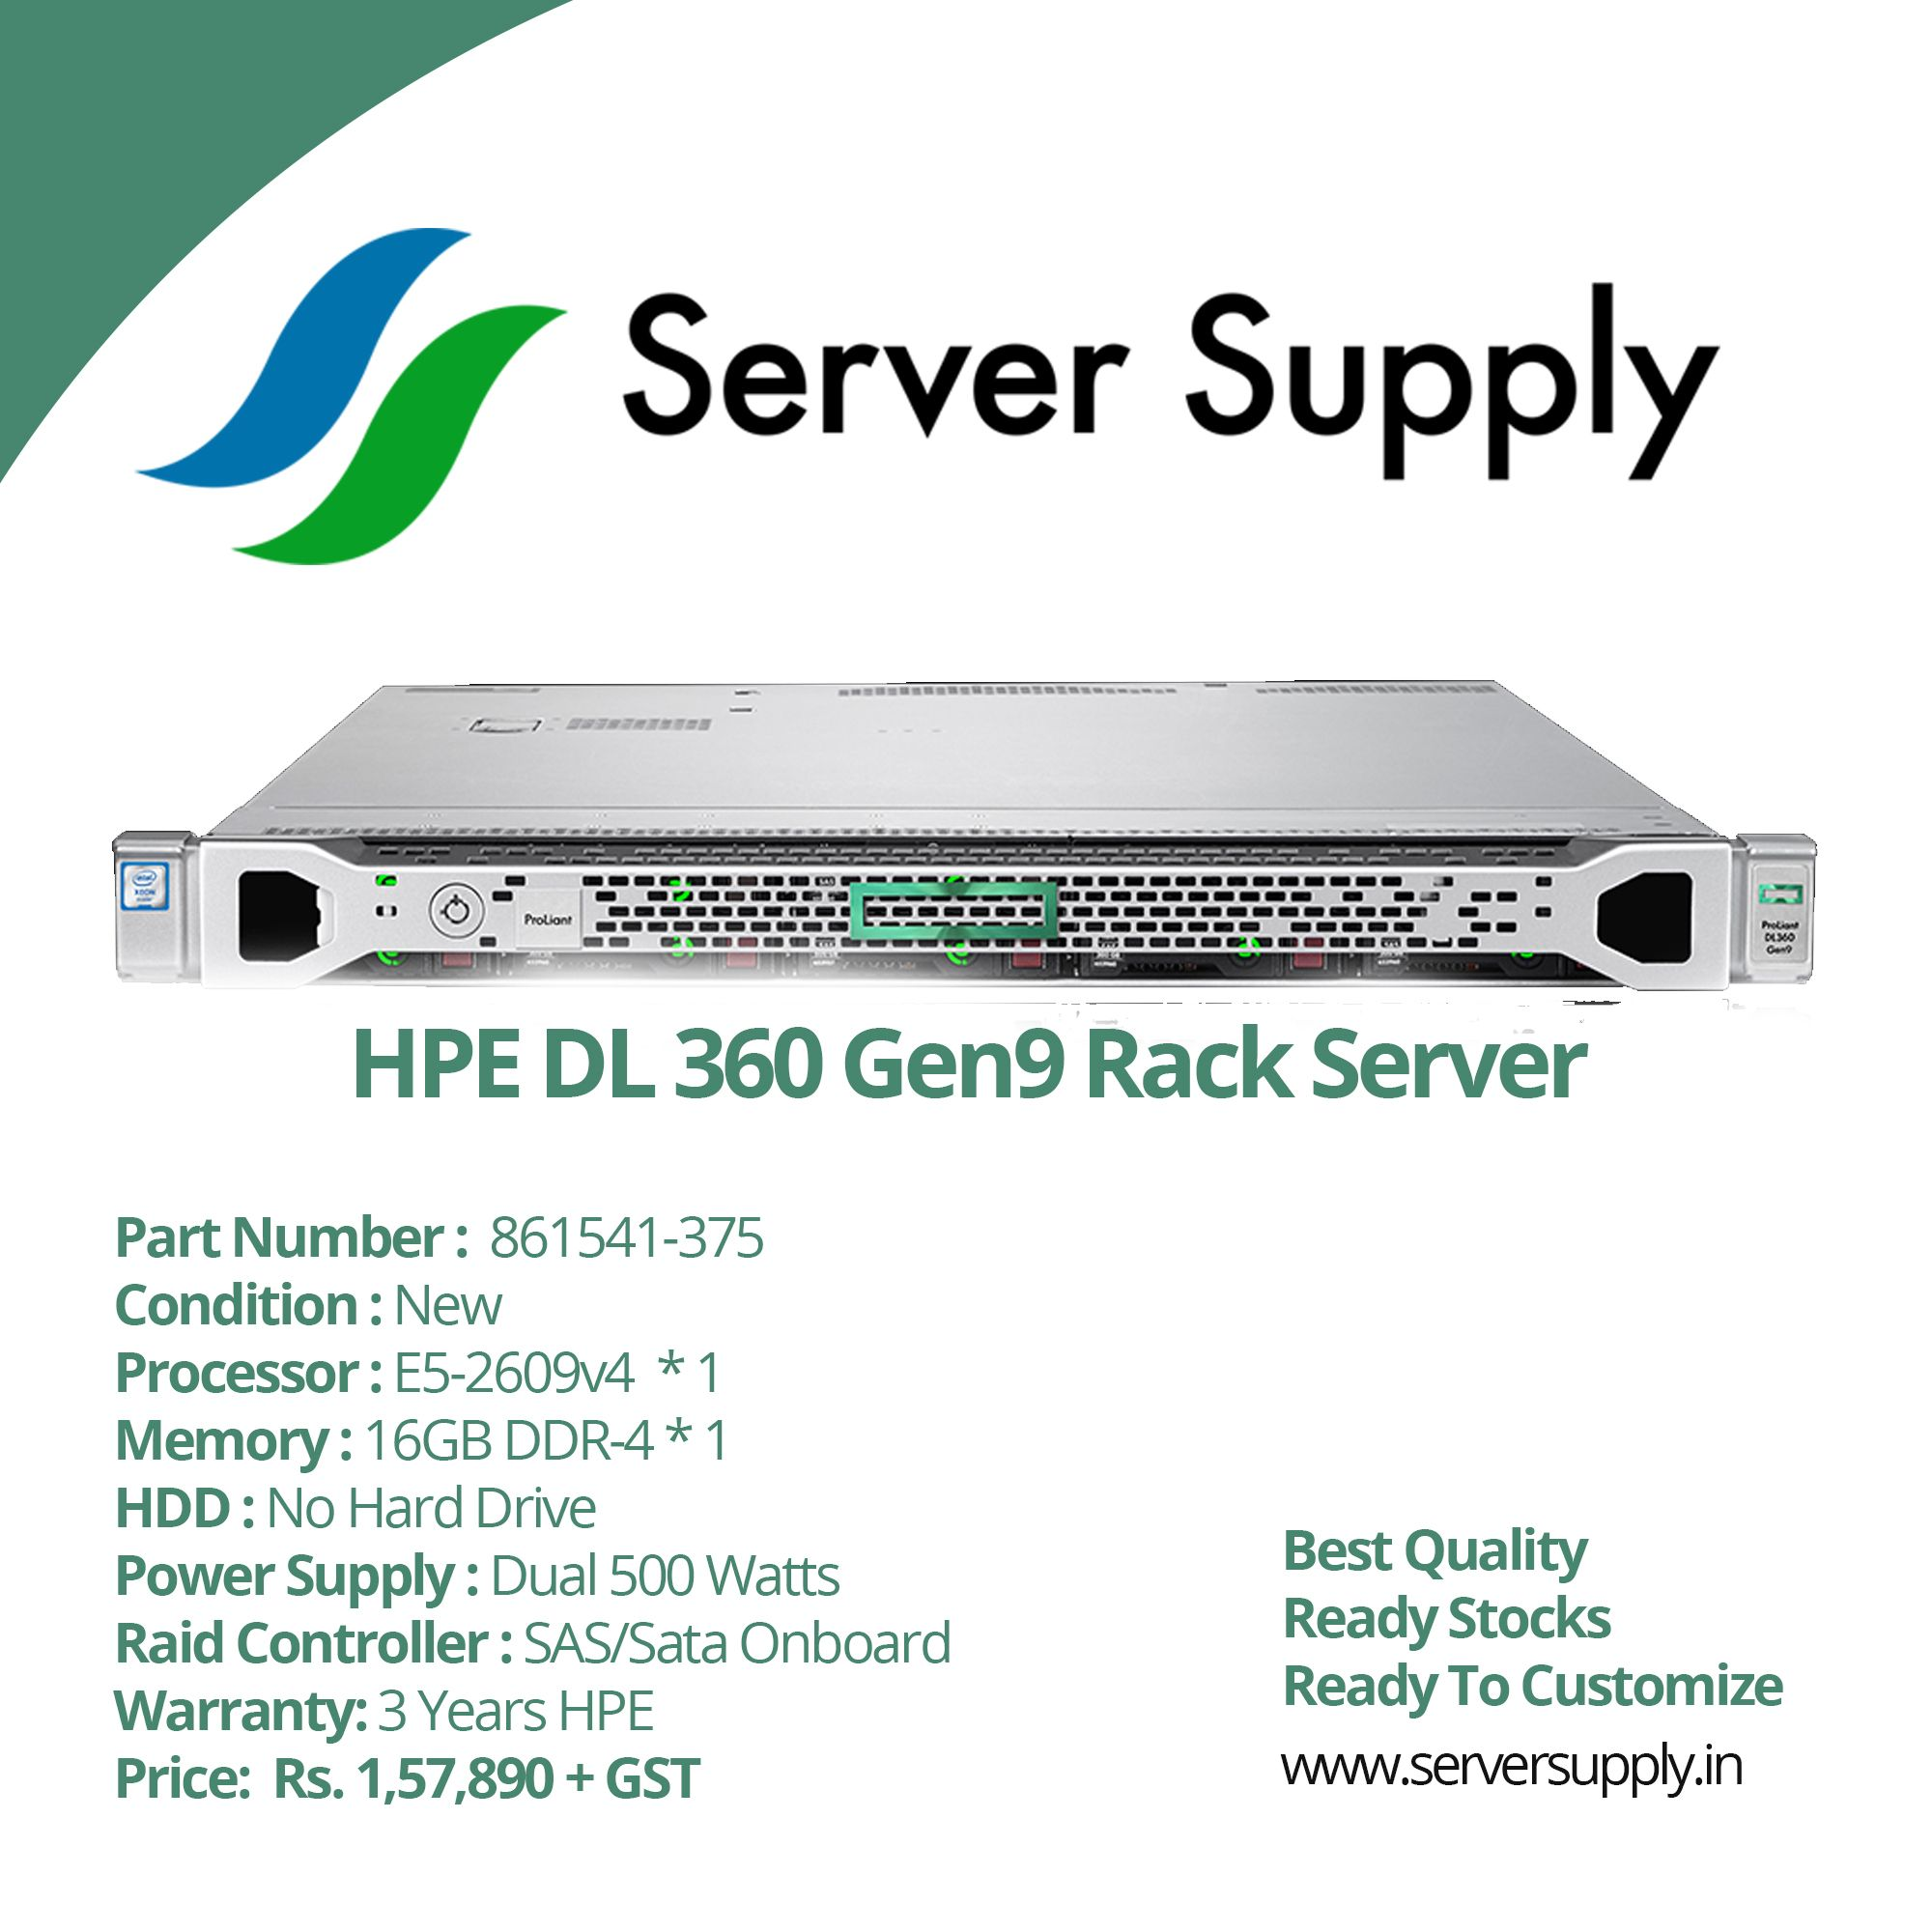 Buy HPE DL 360 Gen9 Rack Server Online From serversupply in